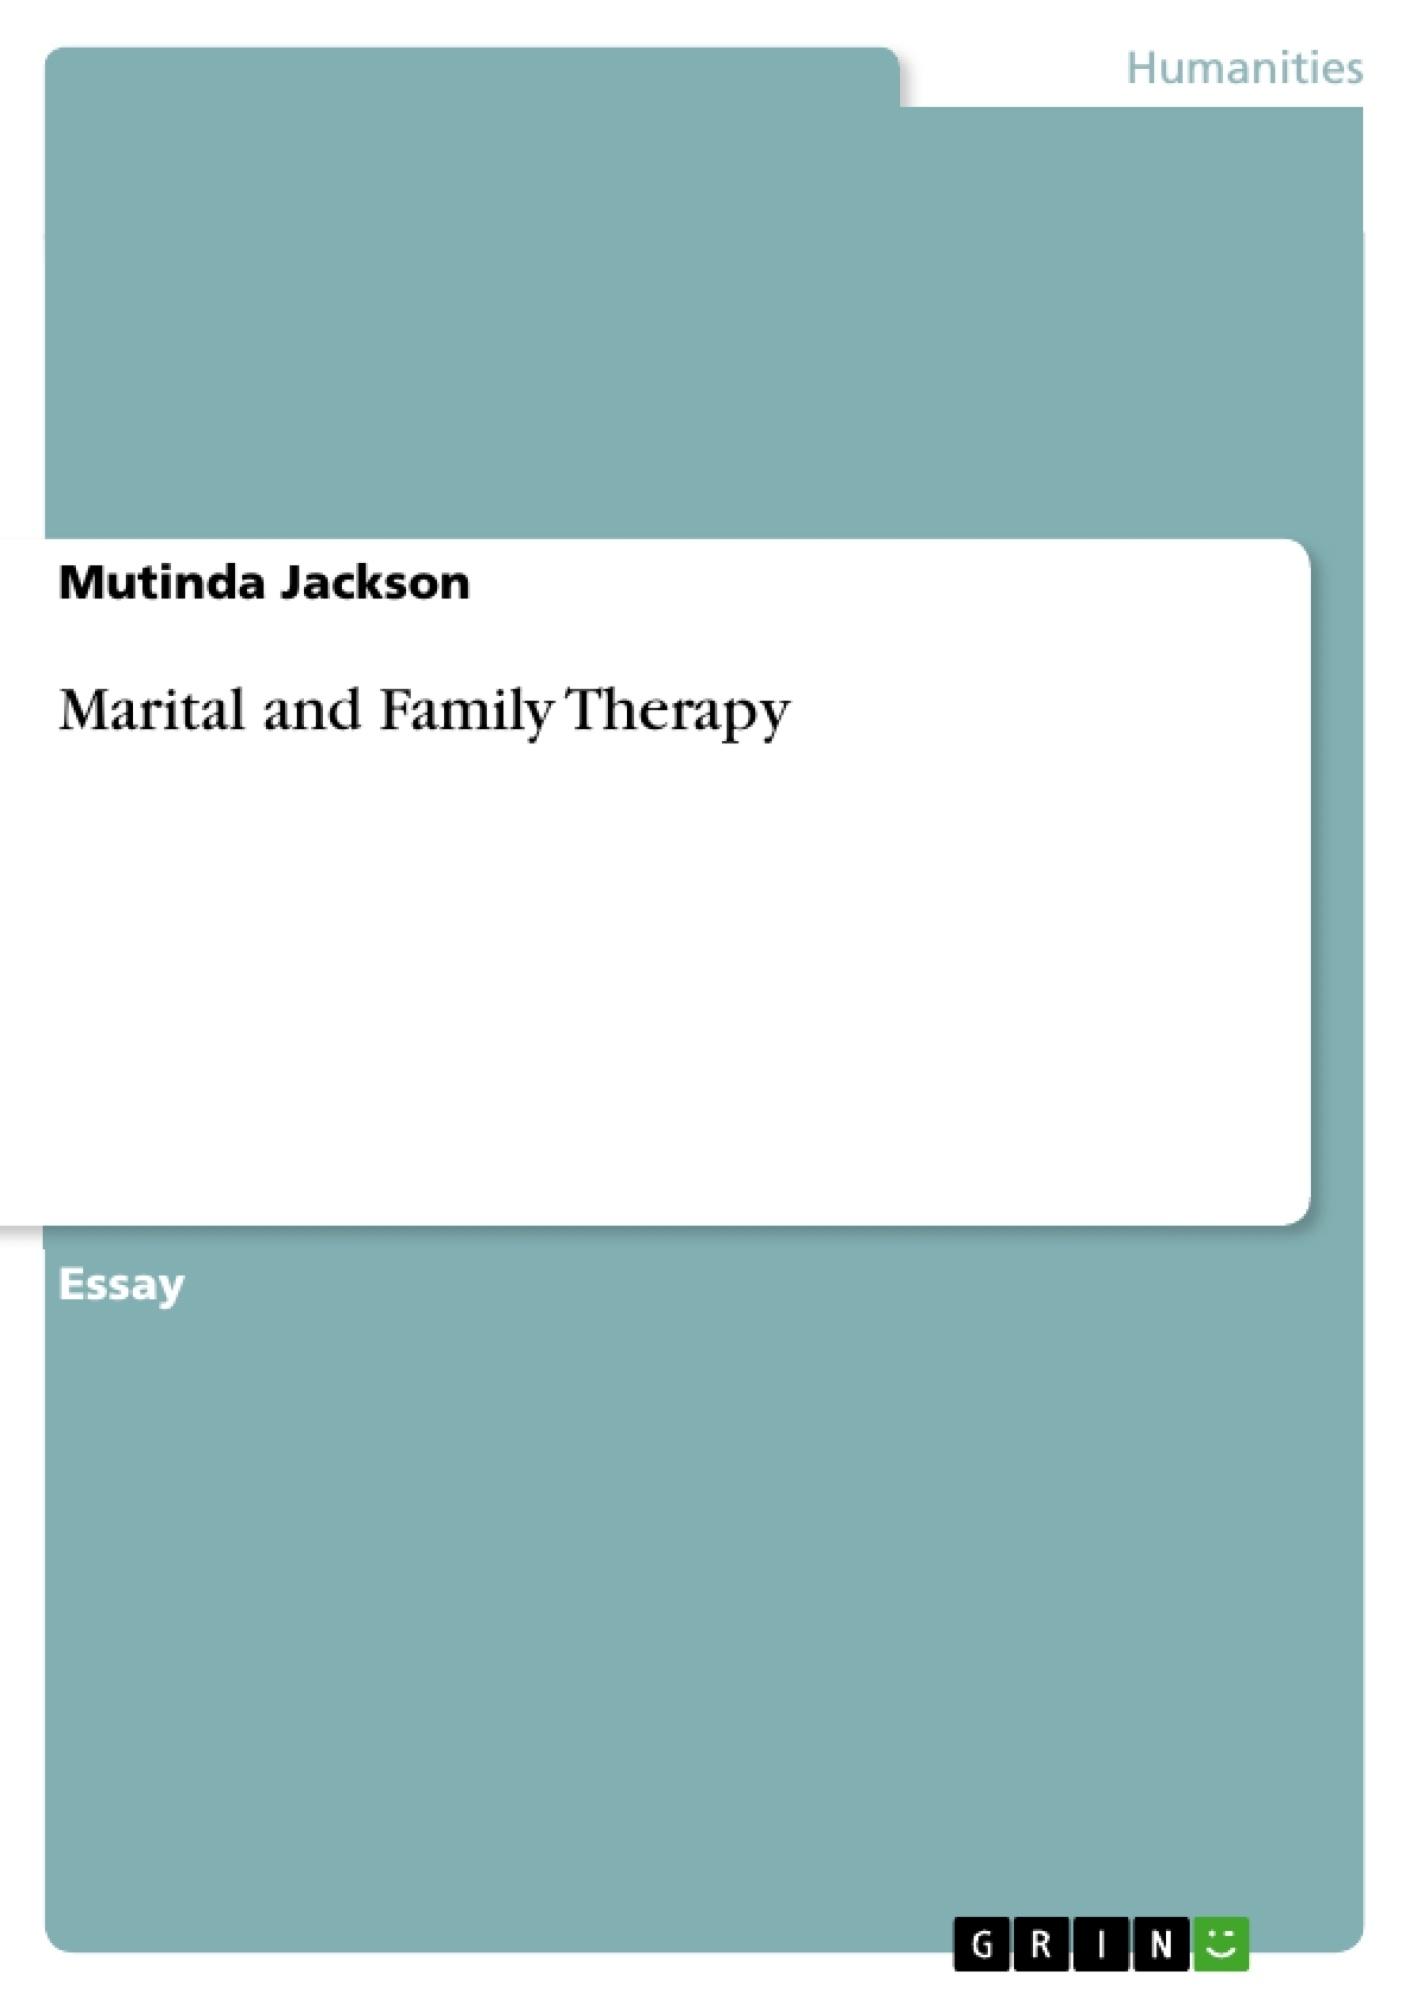 Title: Marital and Family Therapy